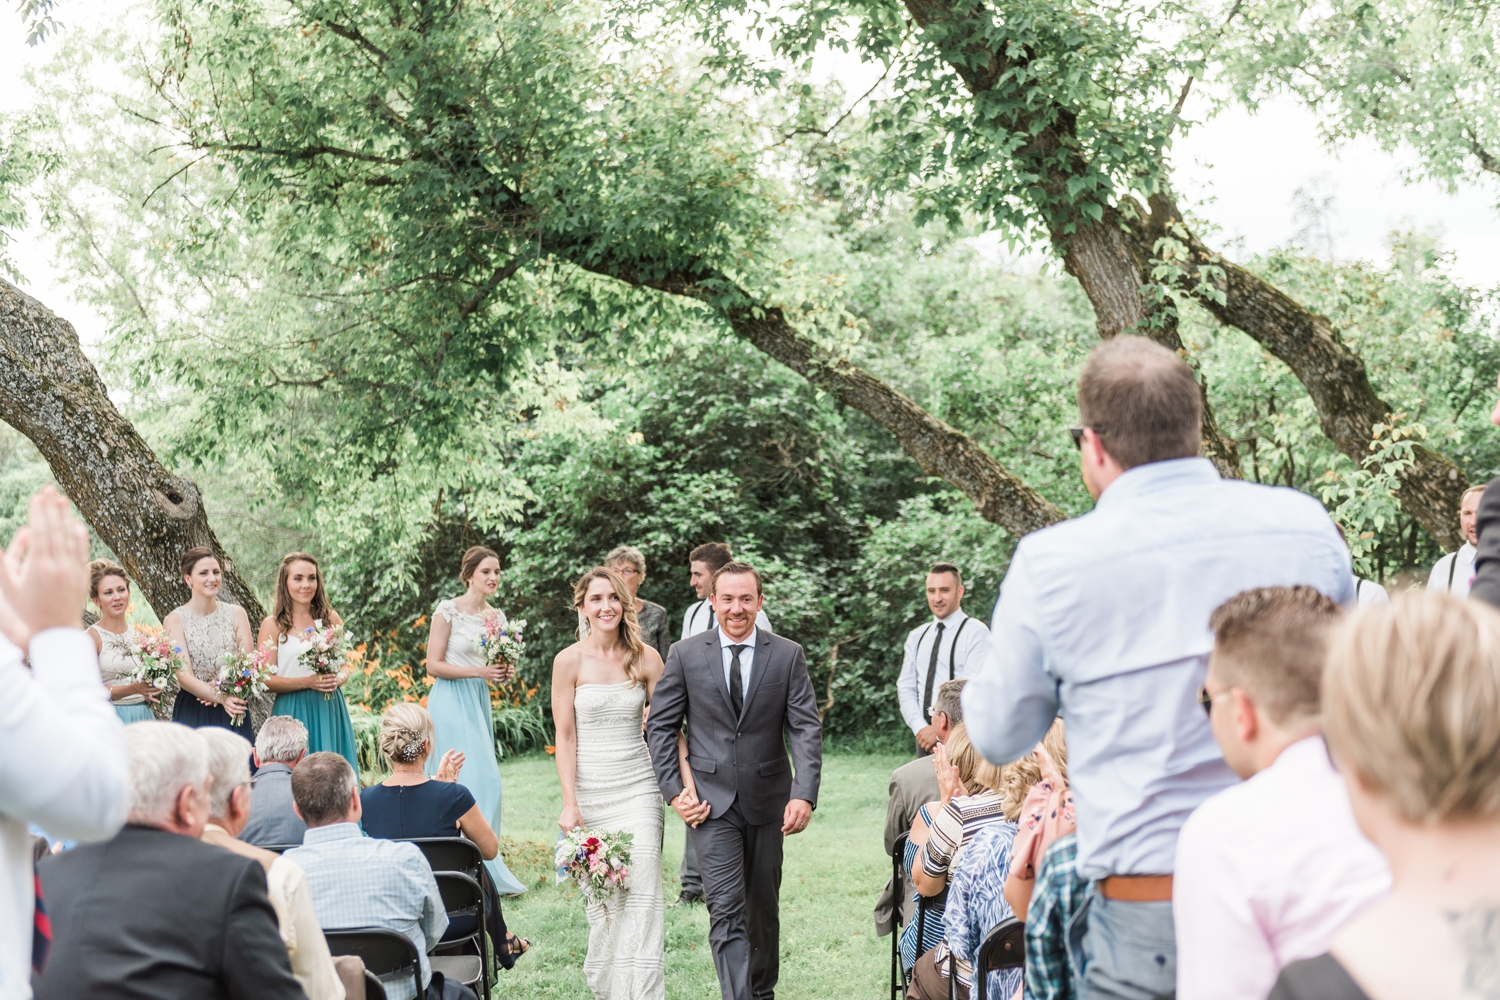 The Herb Garden Wedding 23.jpg